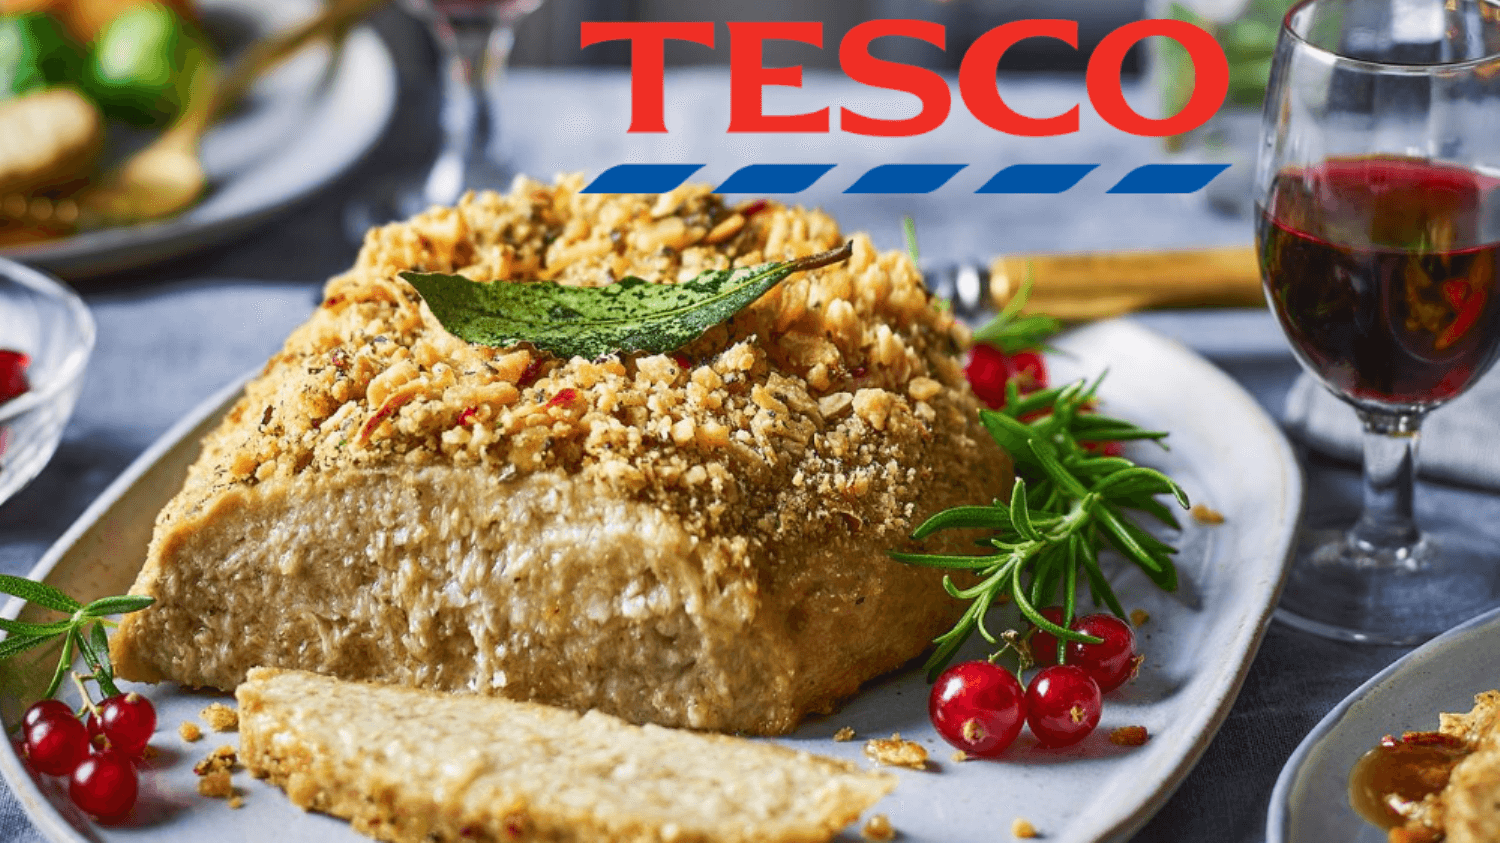 Tesco Launches Vegan Turkey Crown for Christmas Day